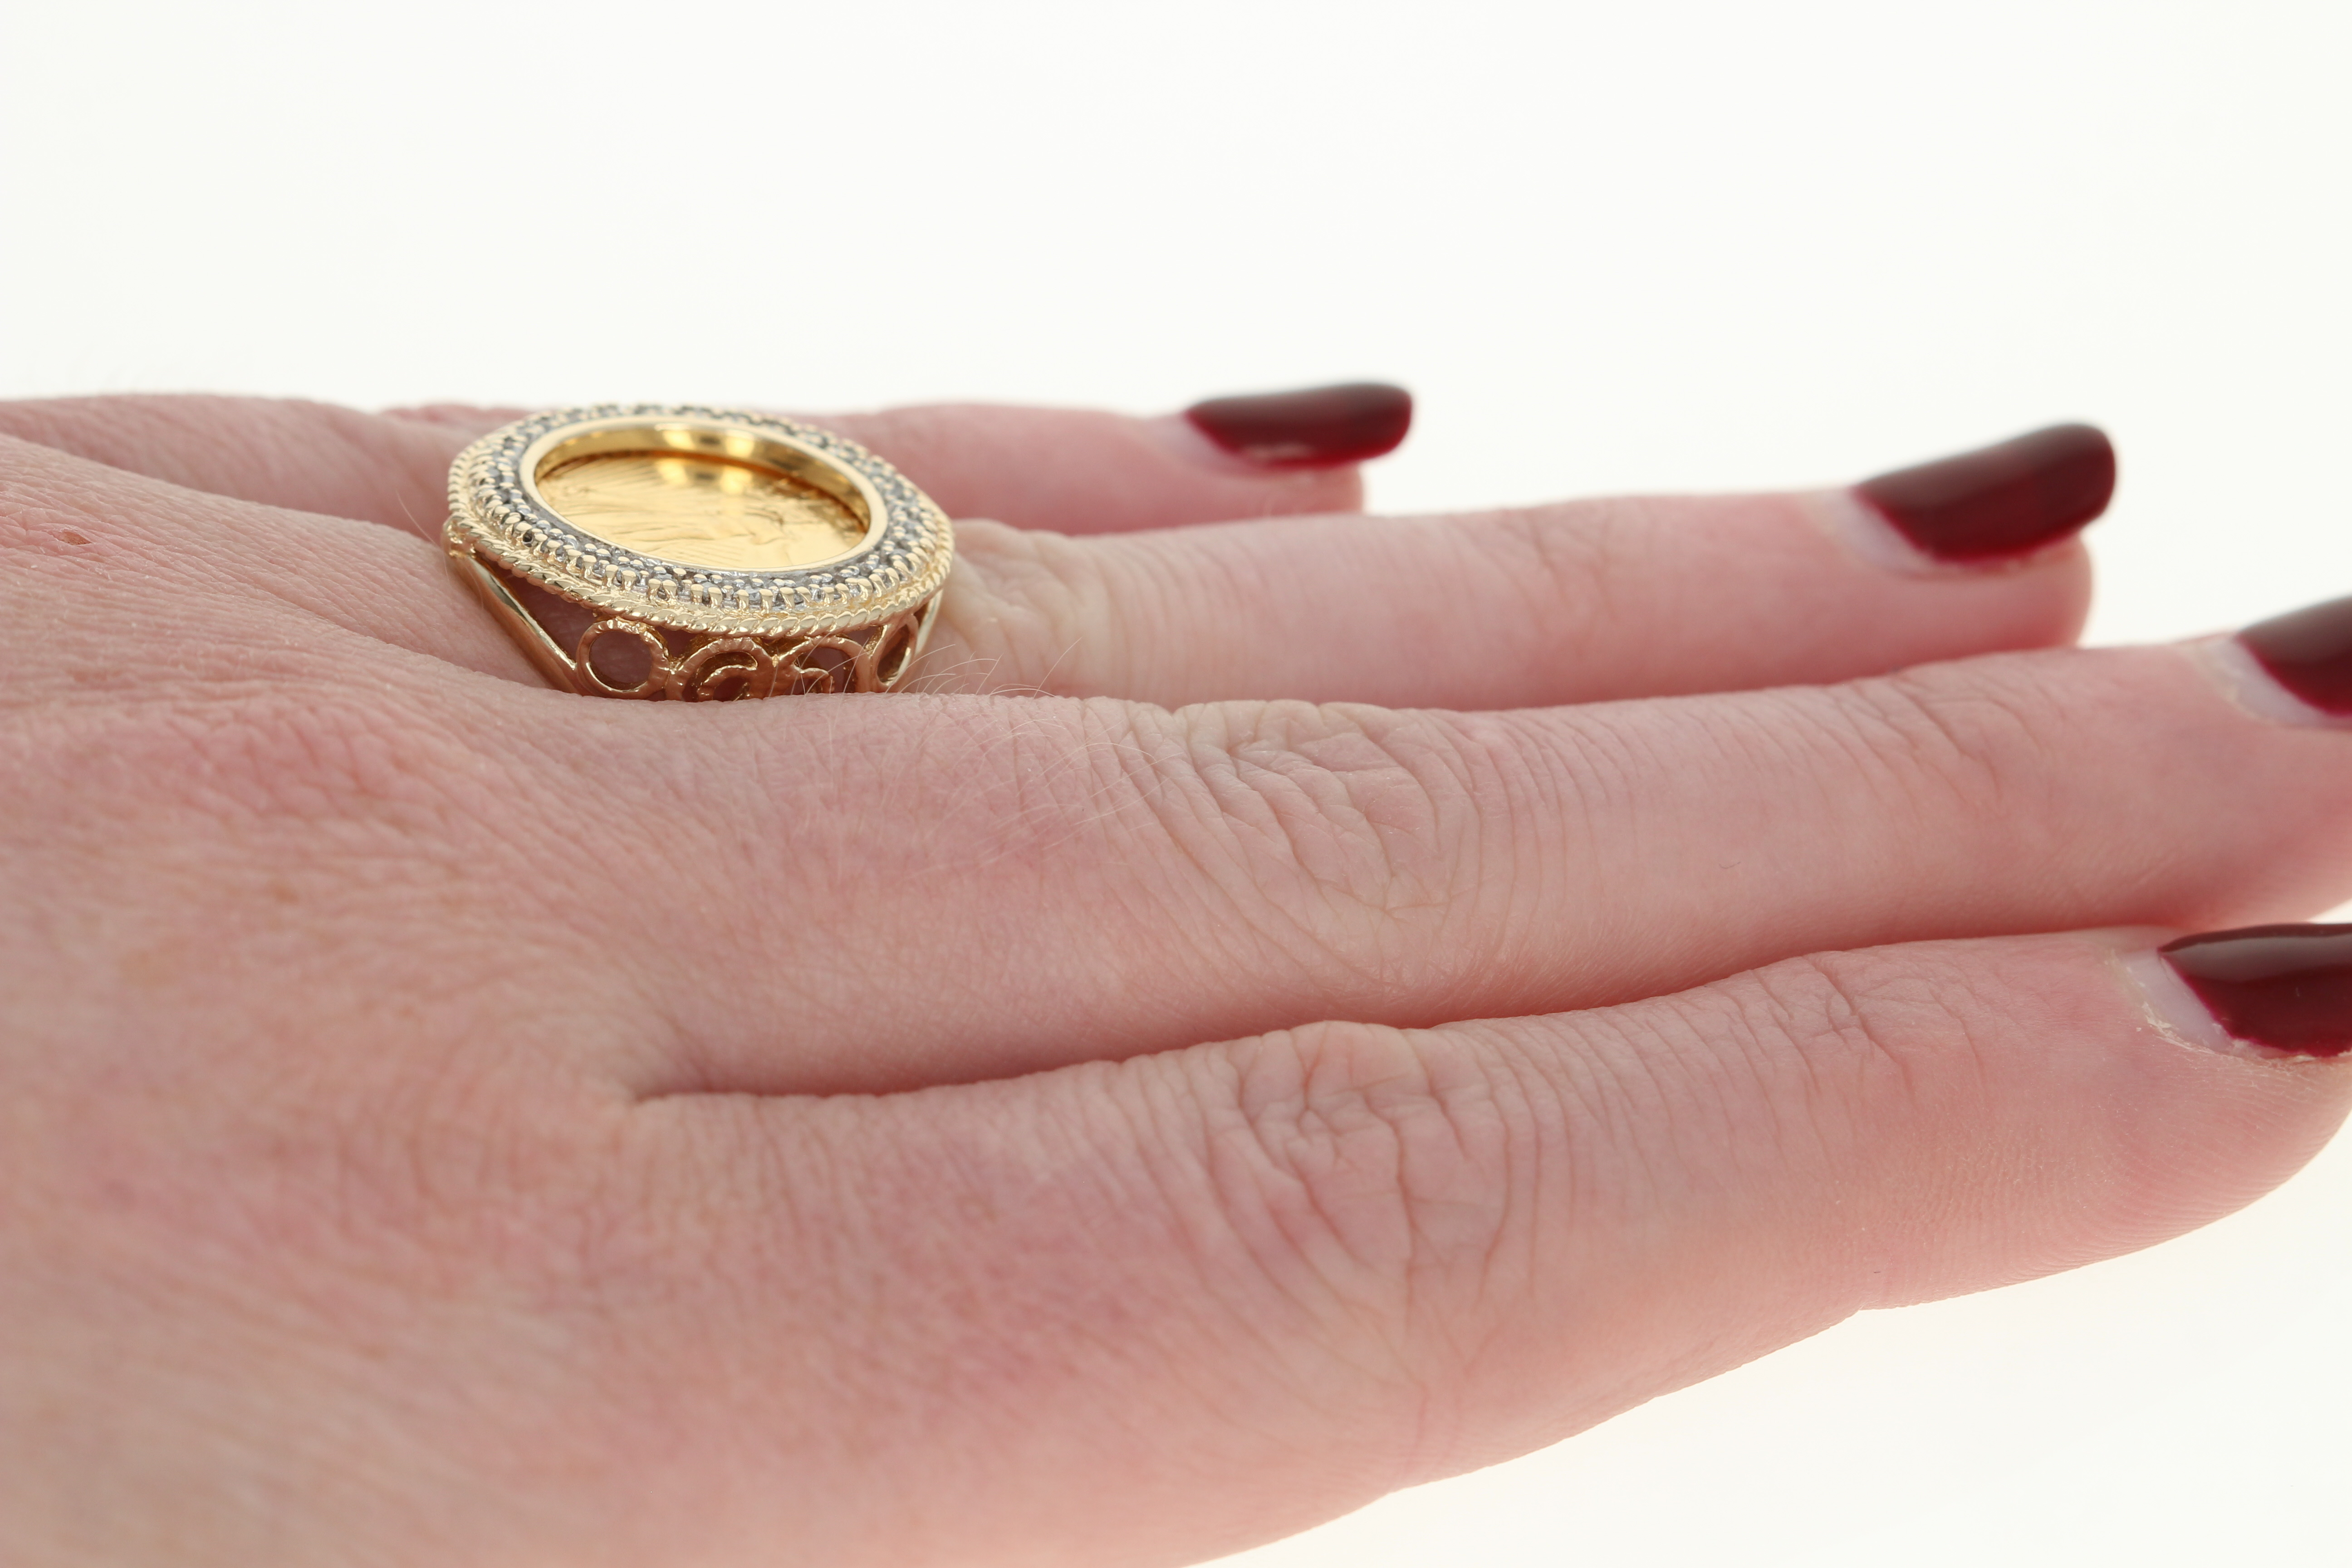 1994 American Eagle $5 Coin Ring - 10k Yellow Gold 1/10oz Halo ...